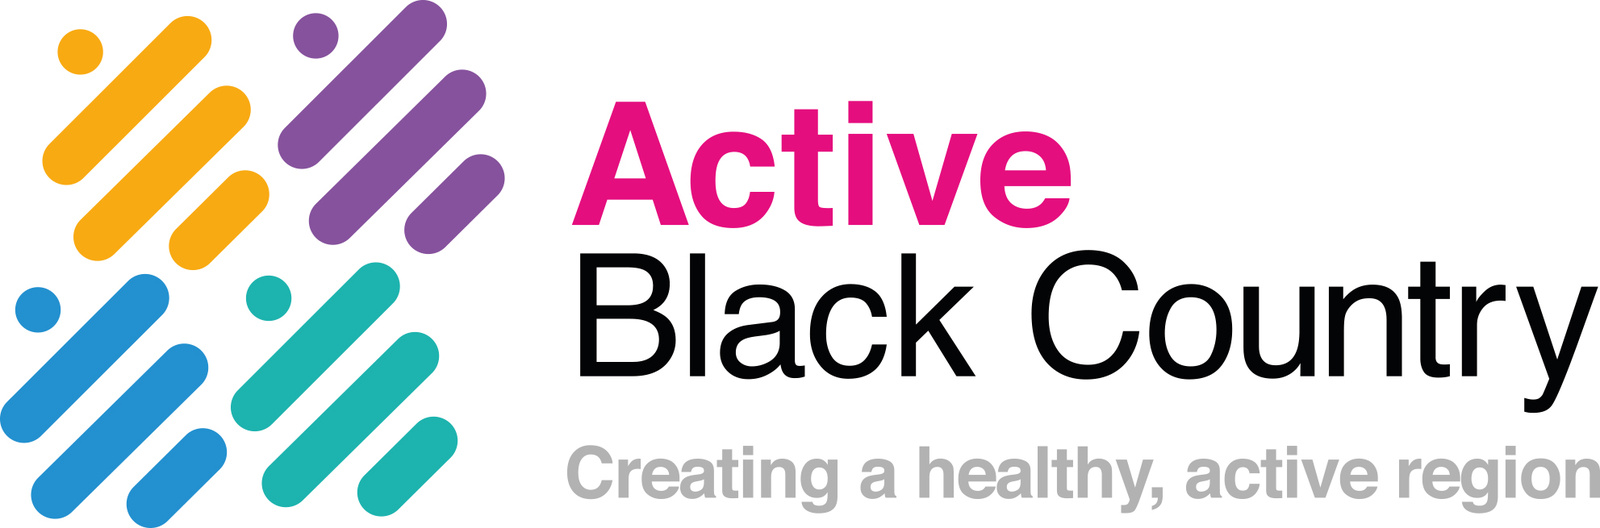 We're looking to appoint an organisation to work with us on an exciting pilot to tackle inactivity